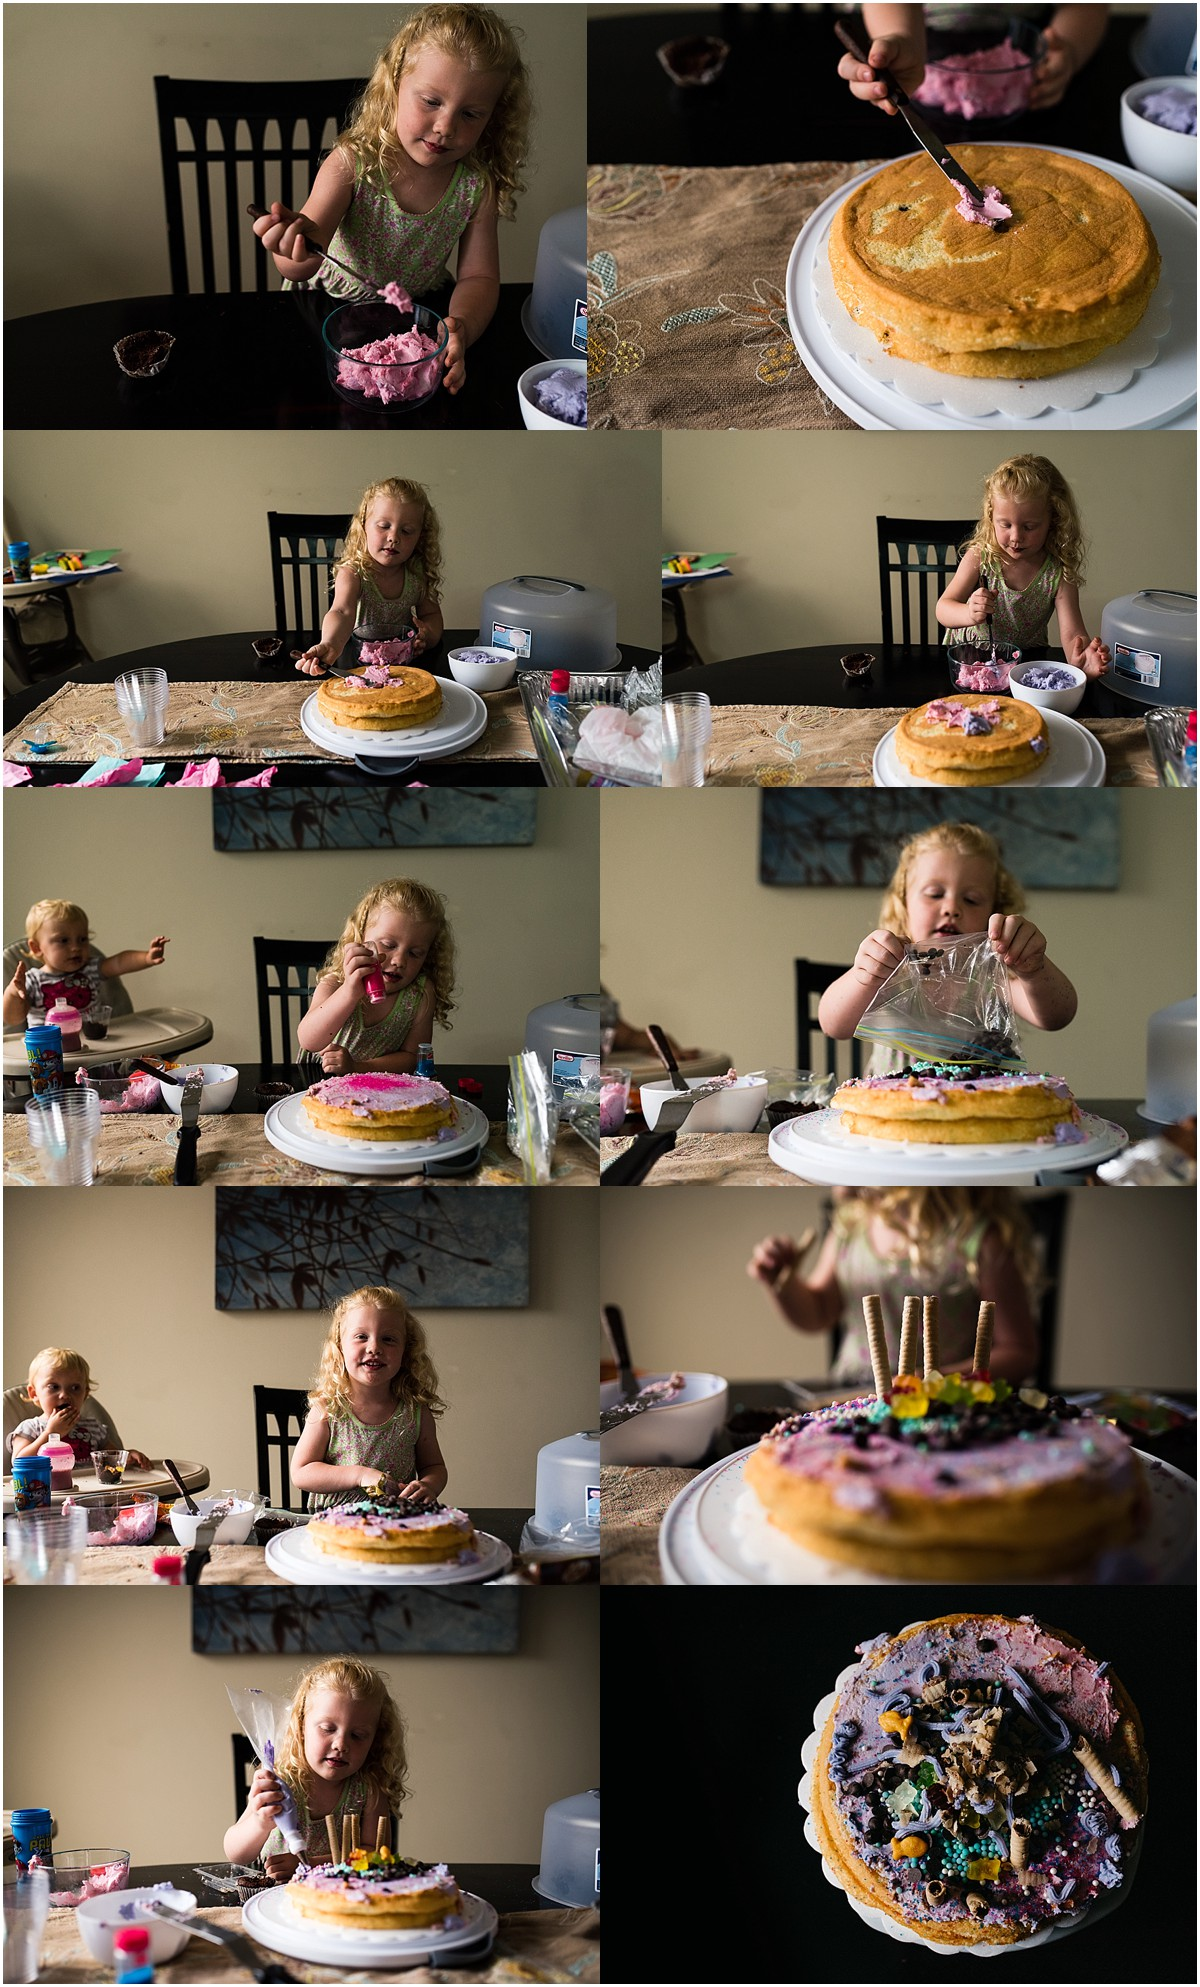 Cake decorating! Our lovely neighbor brought this project over for Madison's birthday. Maddie had SO MUCH FUN decorating this beauty, goldfish and all.